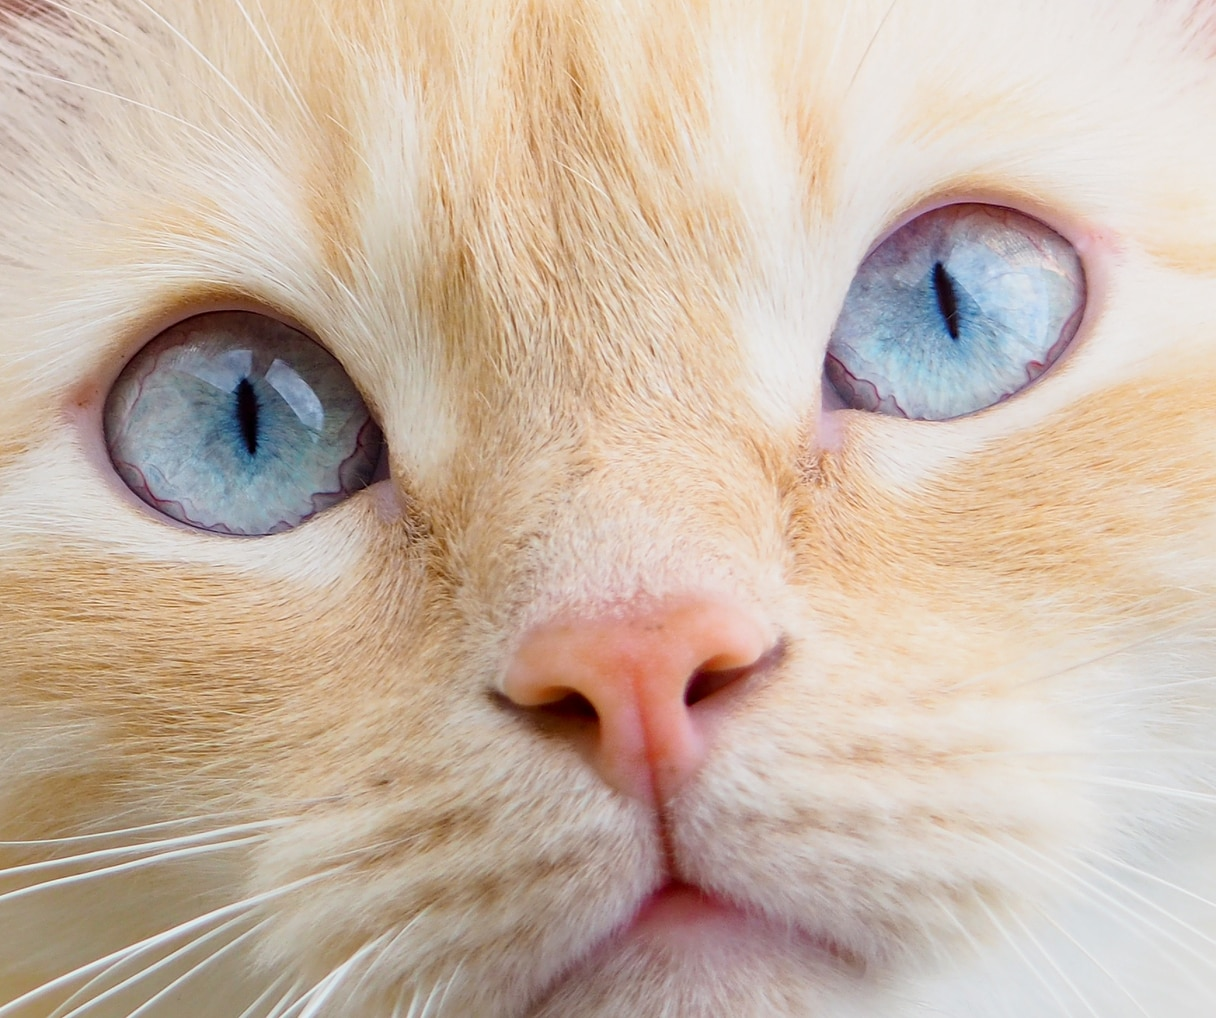 Close-up of a ginger cat with big blue eyes.